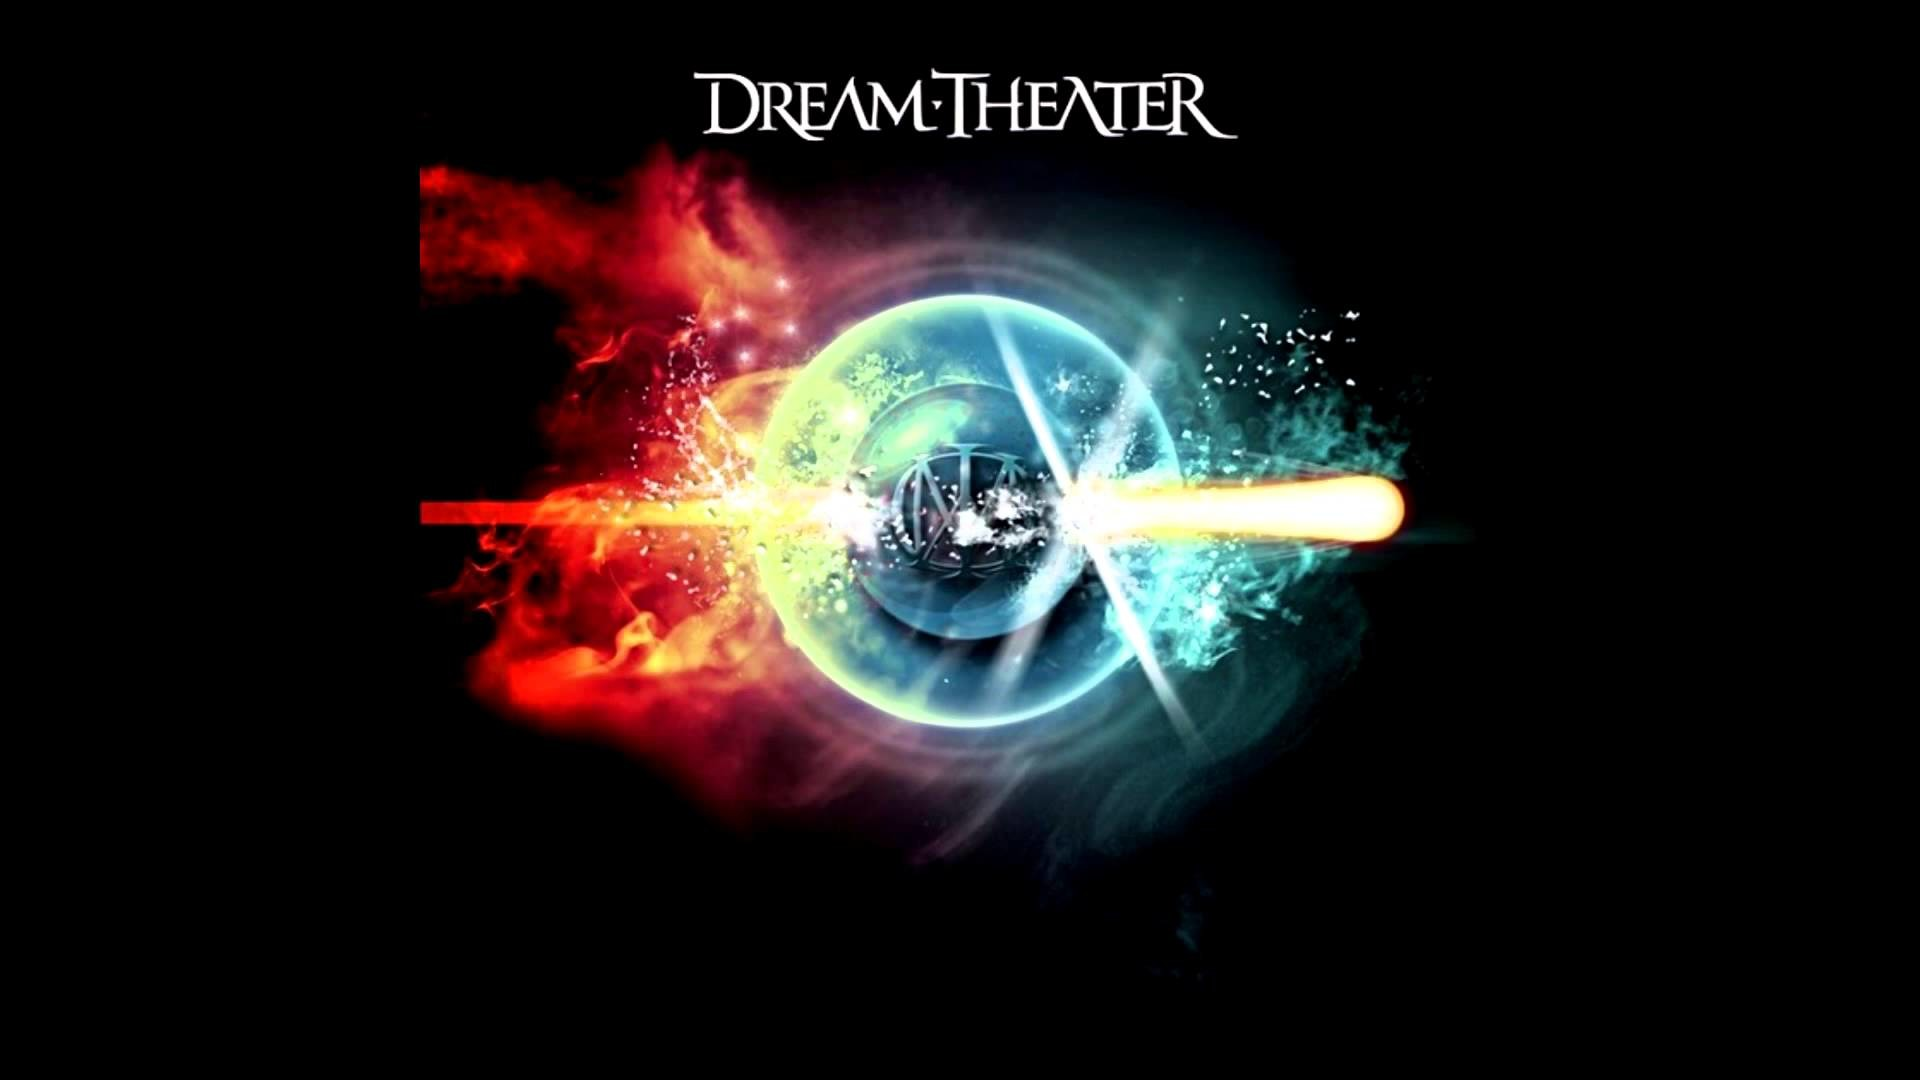 Dream Theater Wallpaper Hd 67 Images